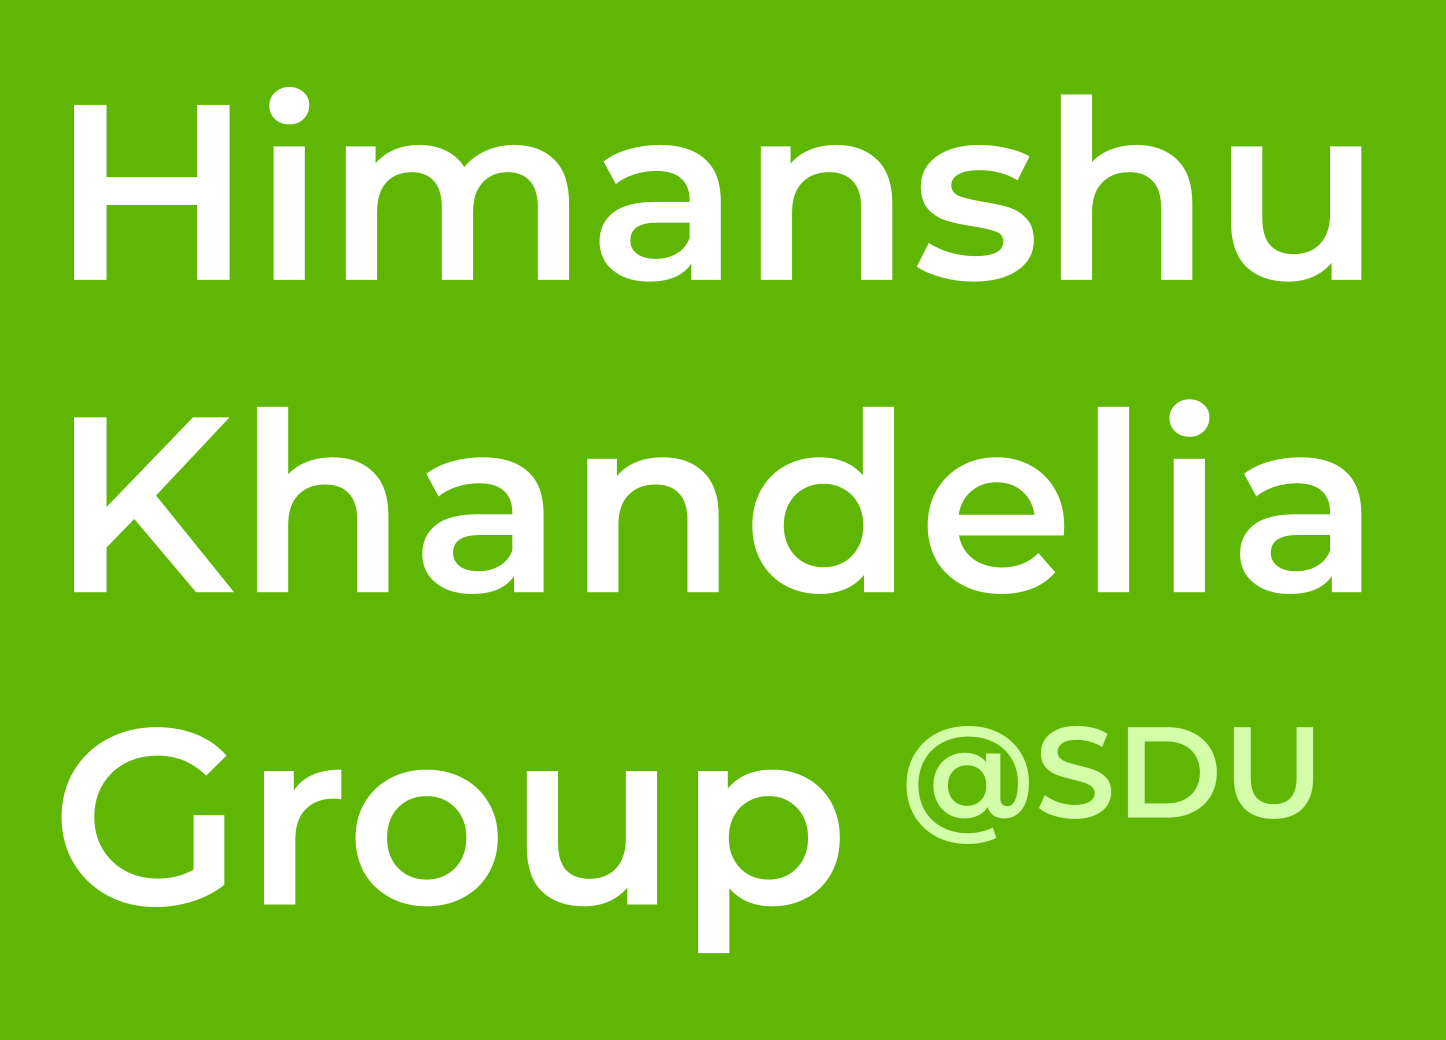 Himanshu Khandelia Group